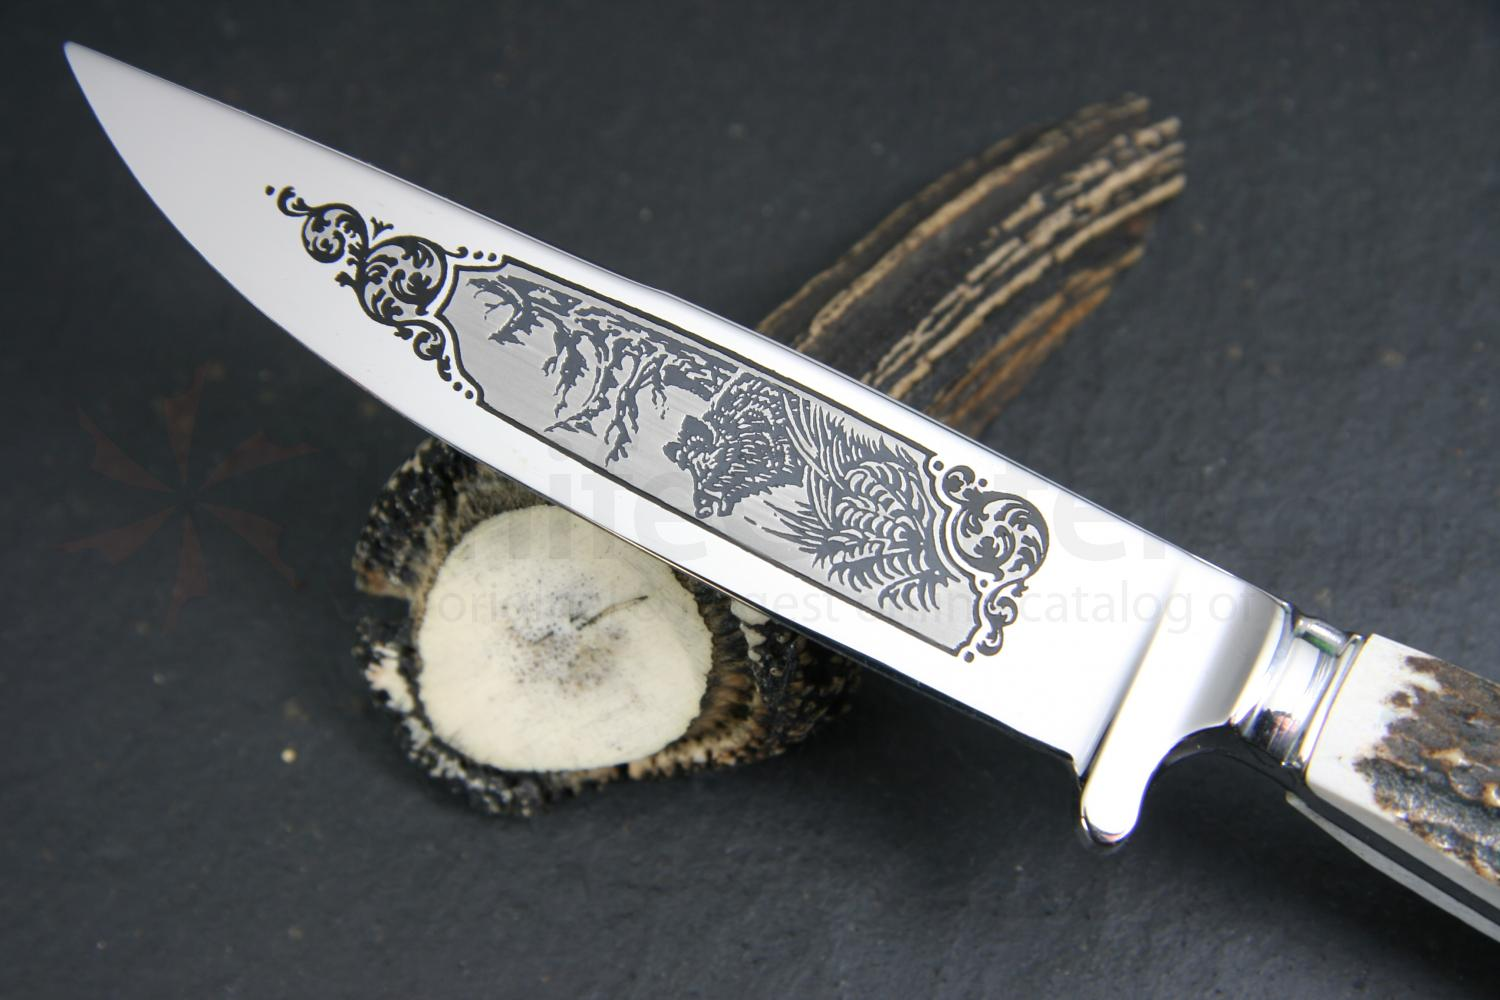 Hubertus Decorated Boar Scene Nicker Fixed 3.75 inch Stainless Blade, Stag Handles, Leather Sheath